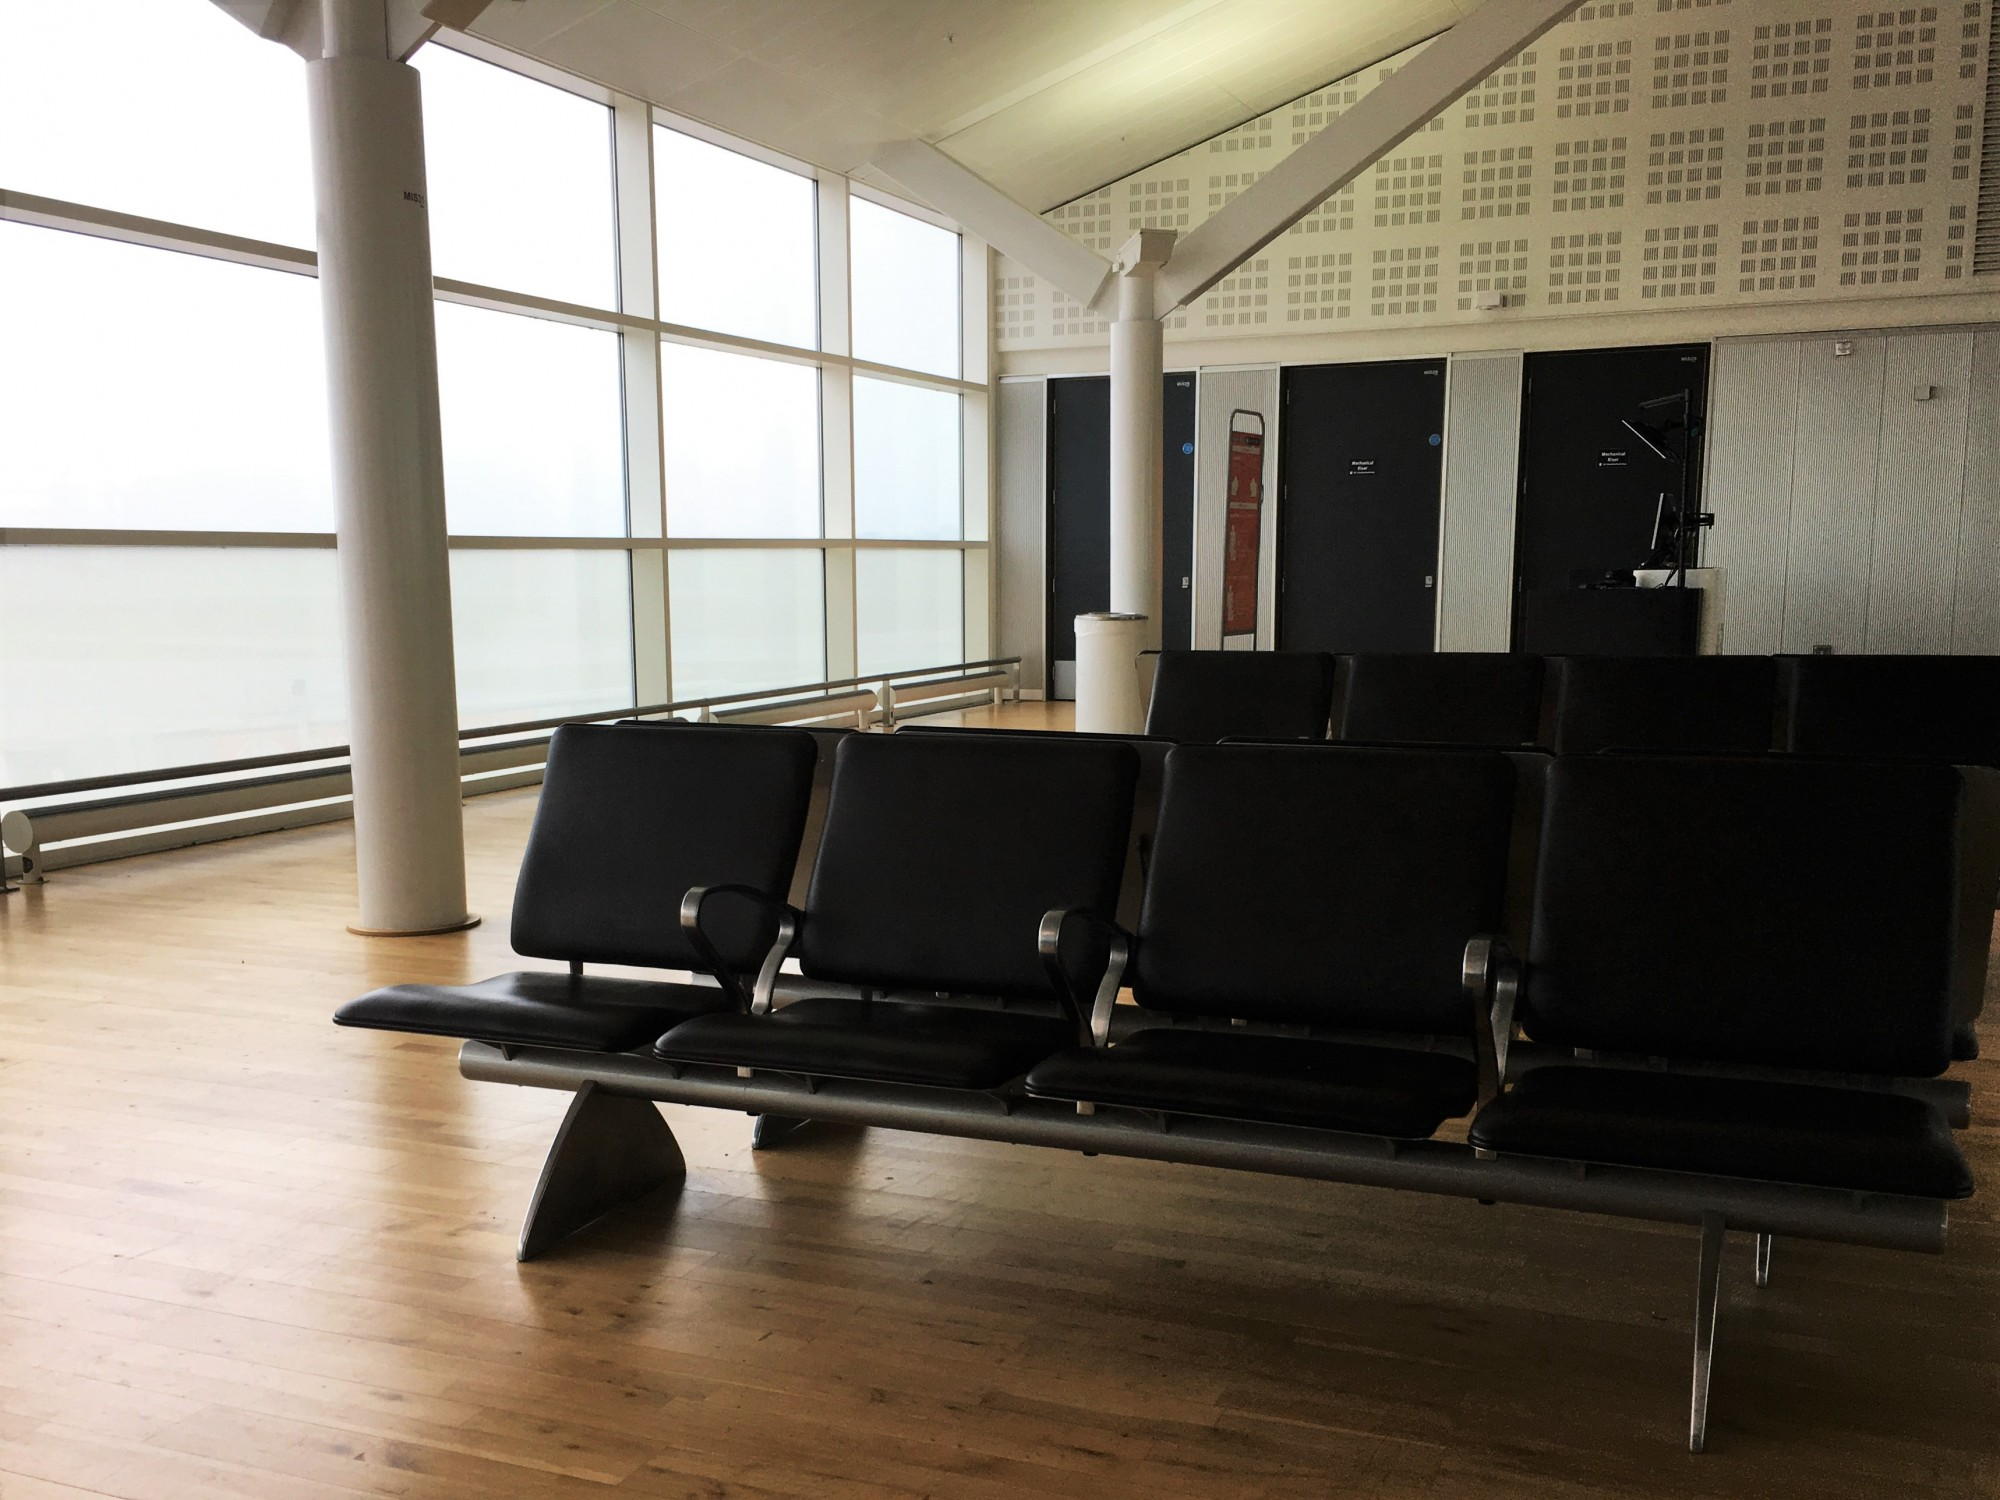 TUI Premium Departure Gate at Birmingham International Airport